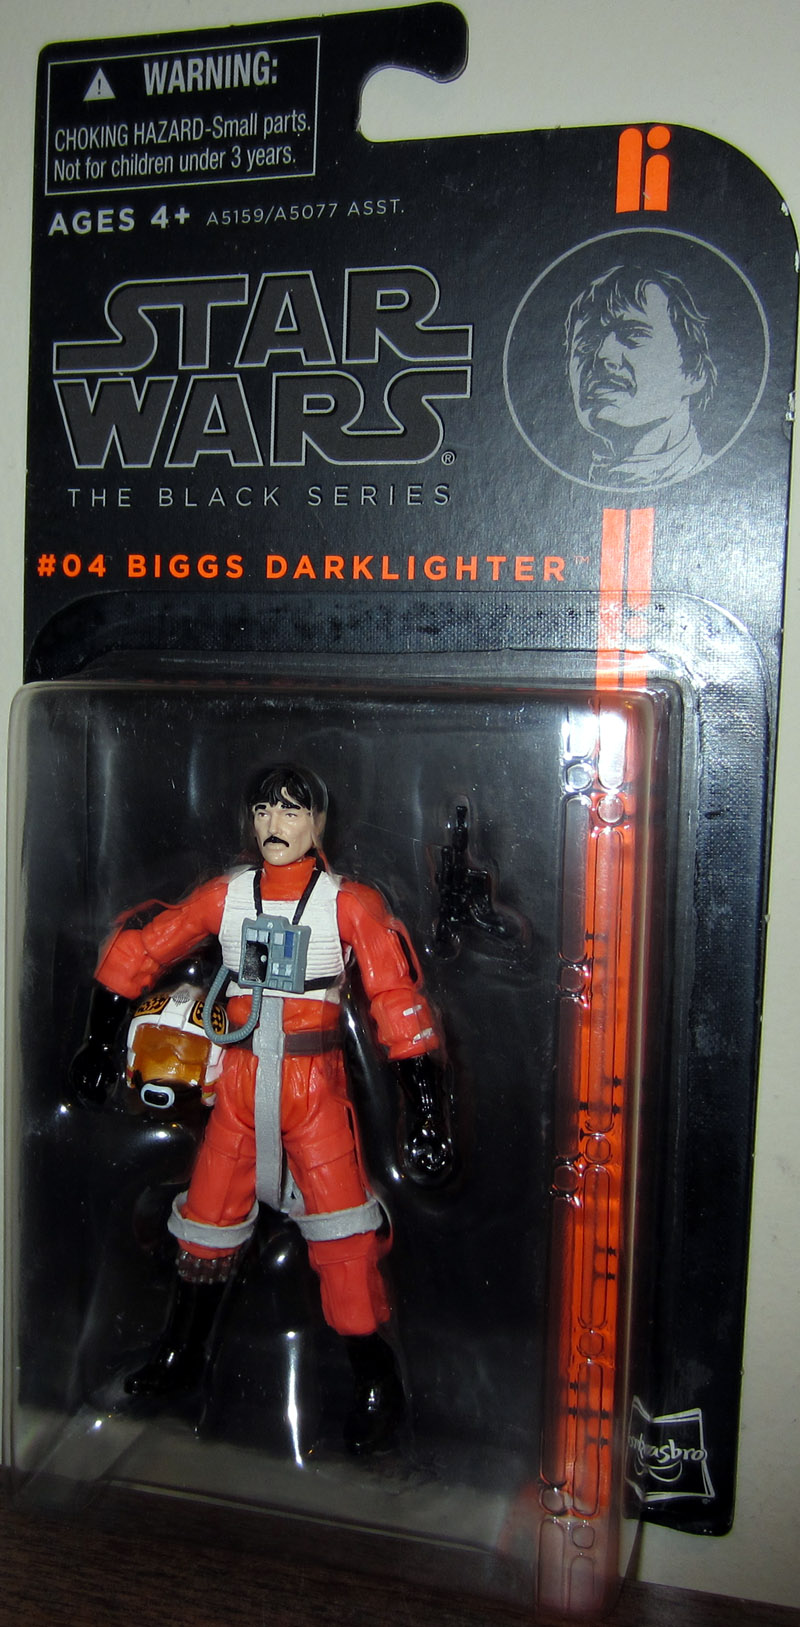 Biggs Darklighter (The Black Series, #04)